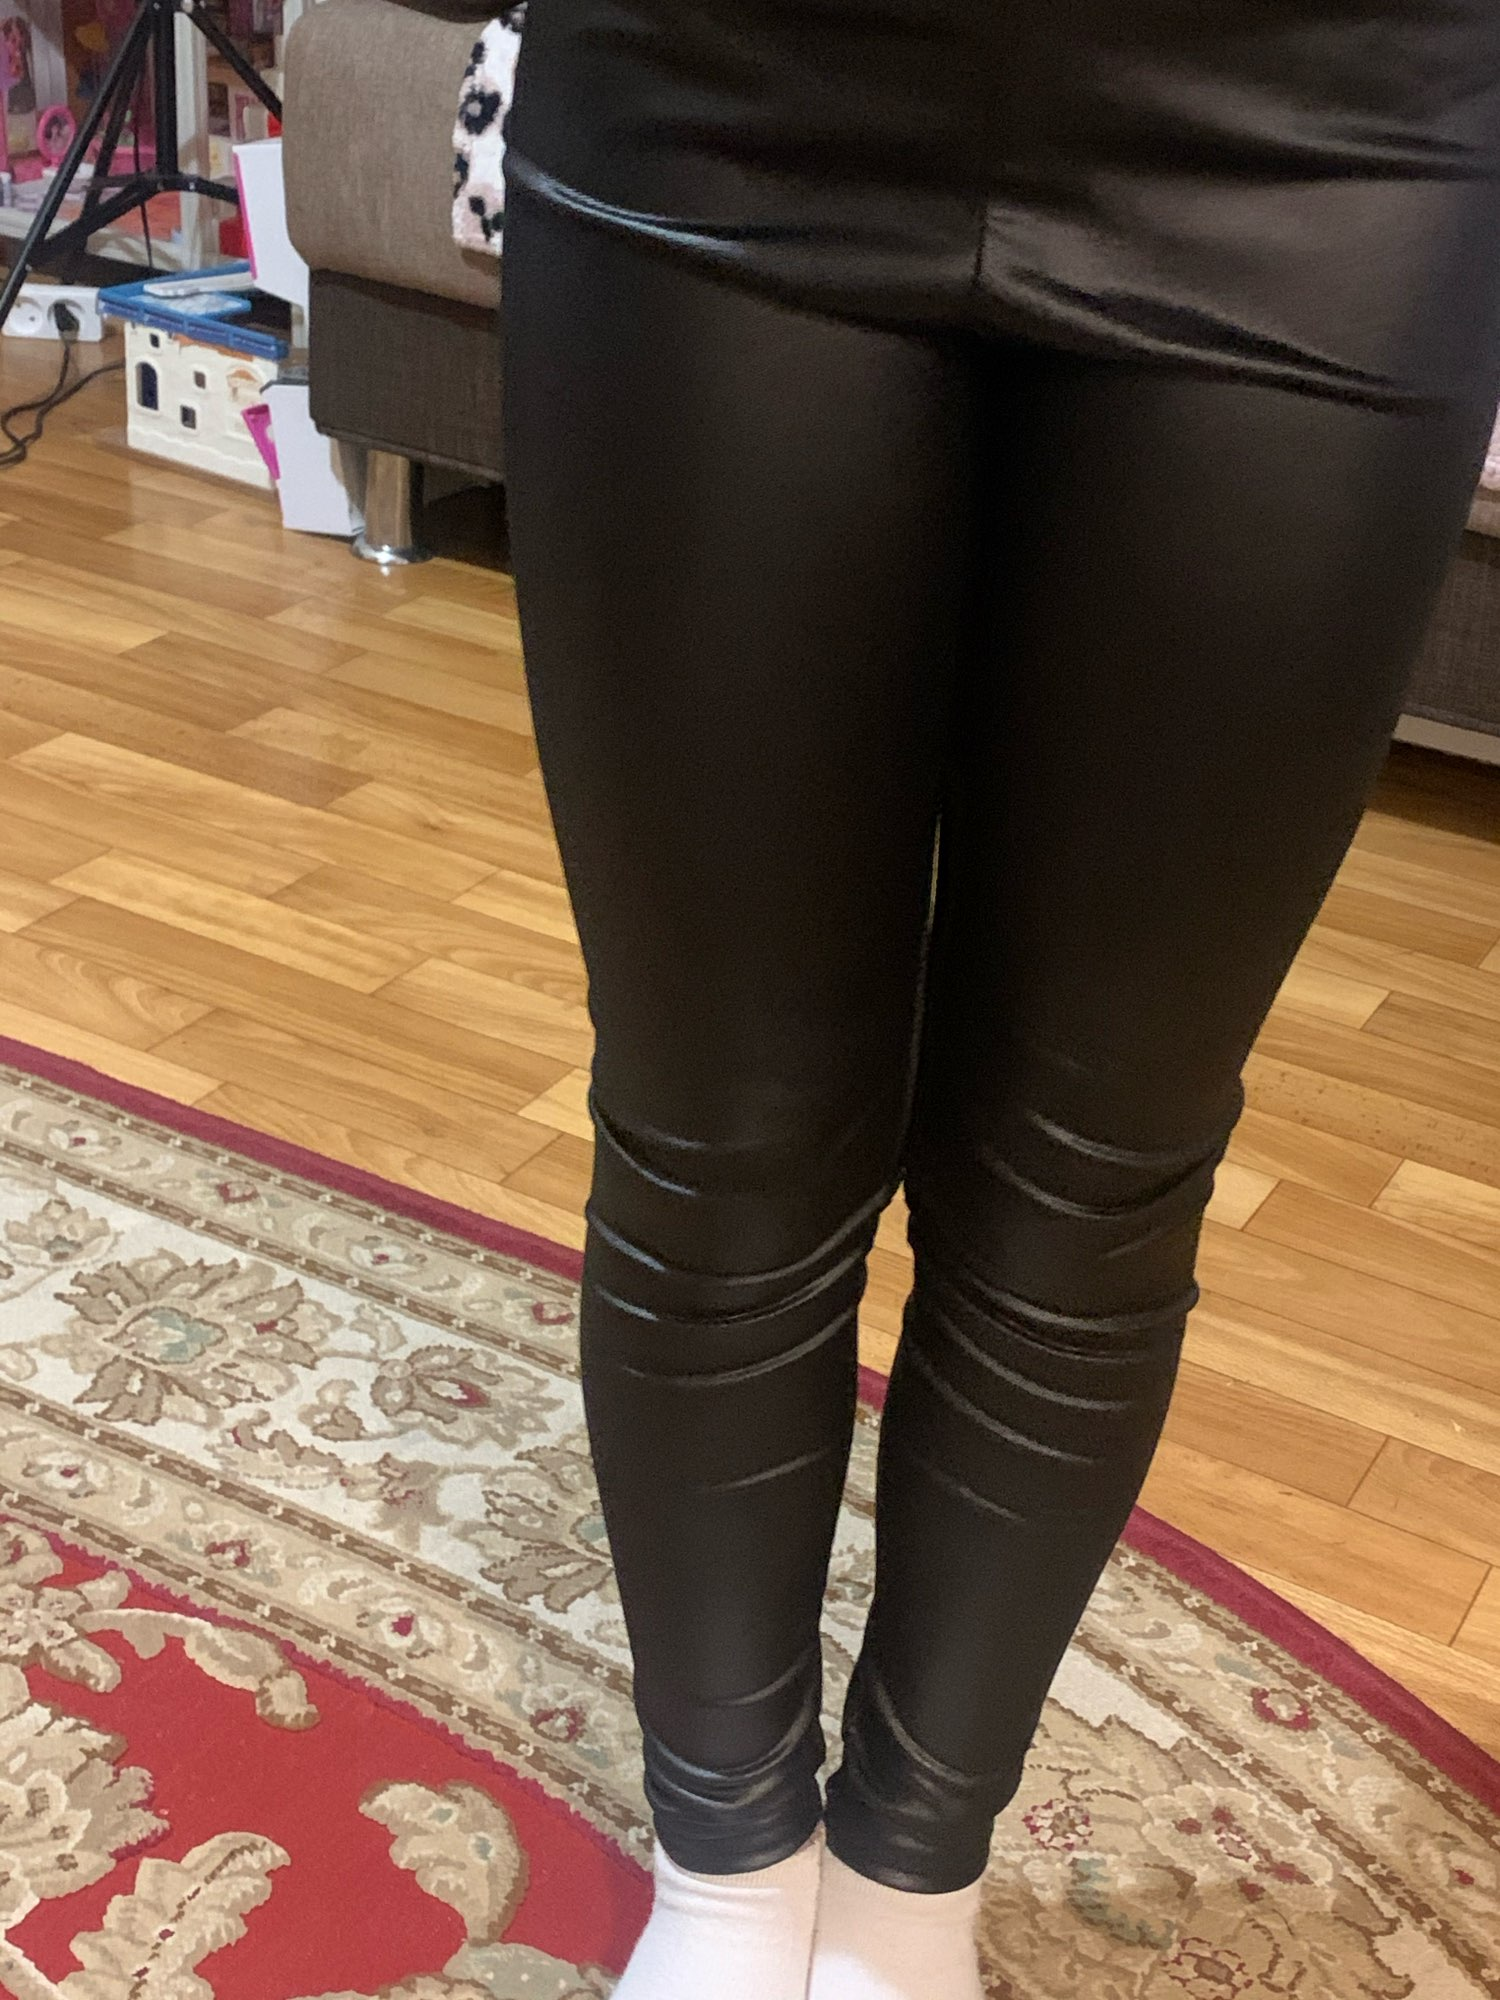 Children's pants leggings Autumn new thin models girls Pu leather popular imitation leather pants Elastic Solid Kids Trousers photo review